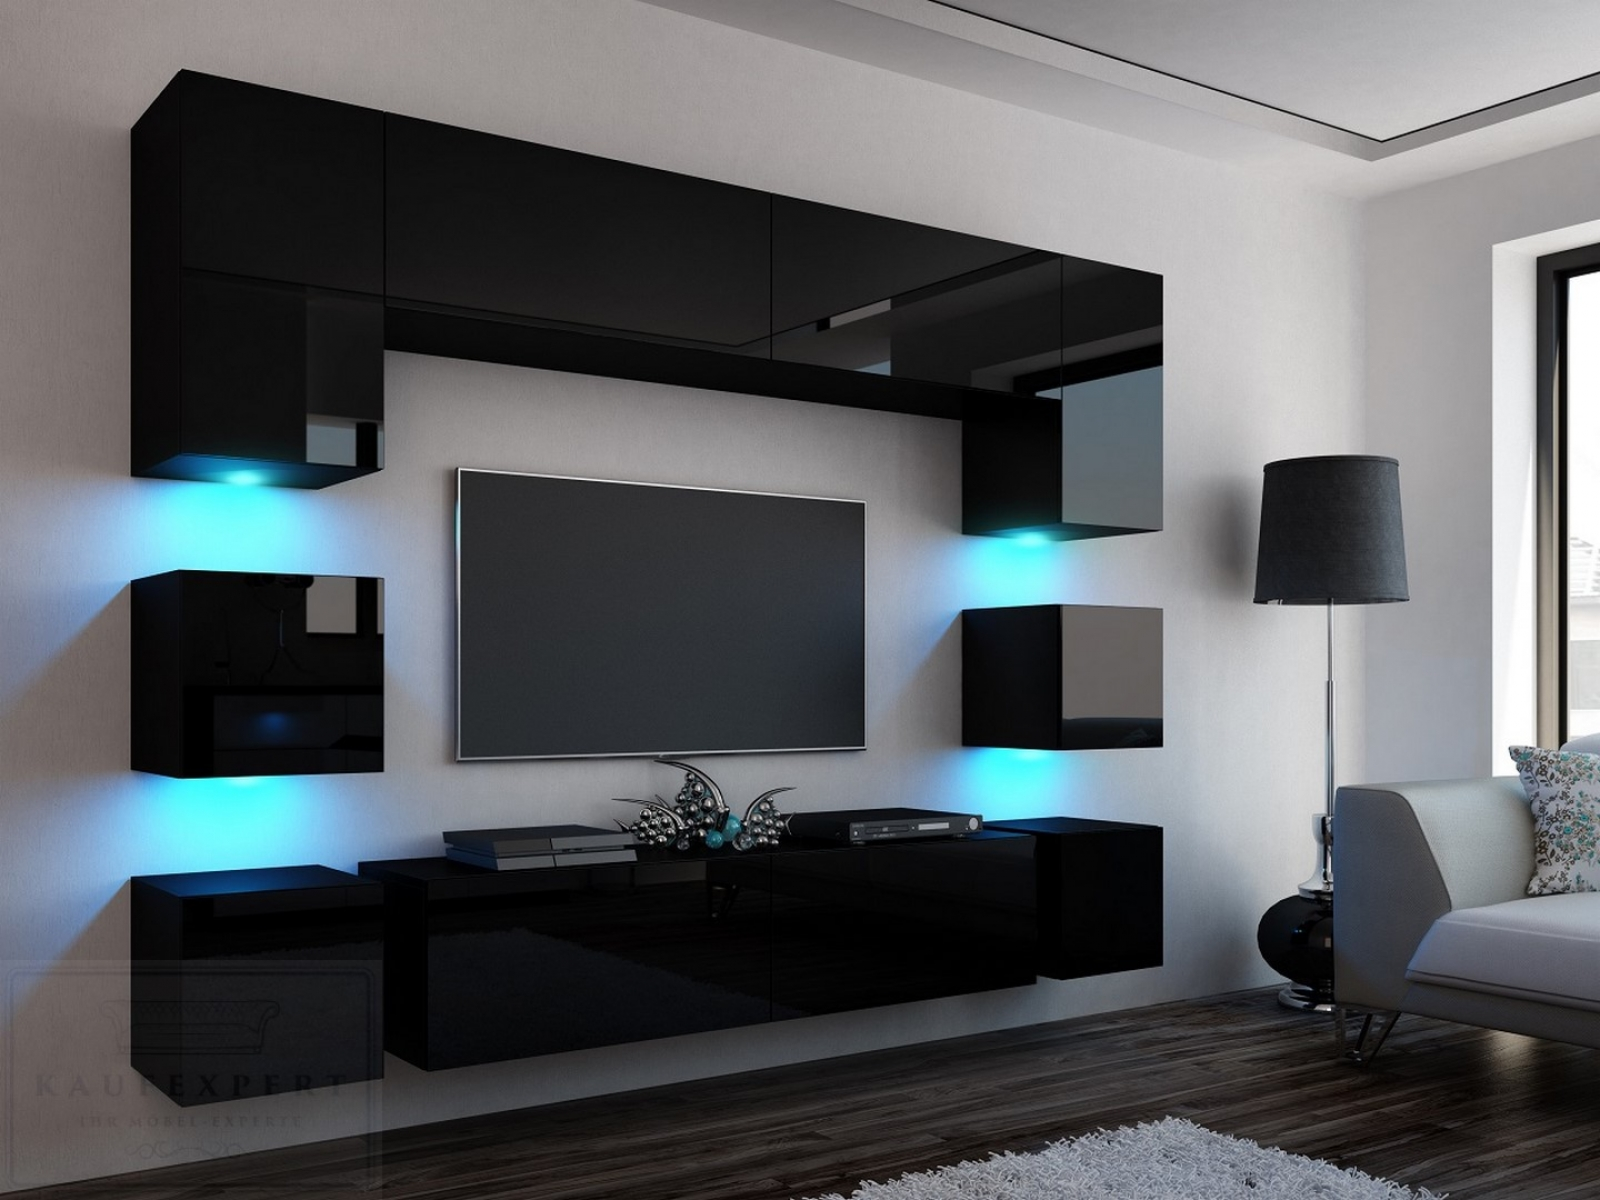 kaufexpert wohnwand quadro schwarz hochglanz 228 cm mediawand medienwand design modern led. Black Bedroom Furniture Sets. Home Design Ideas